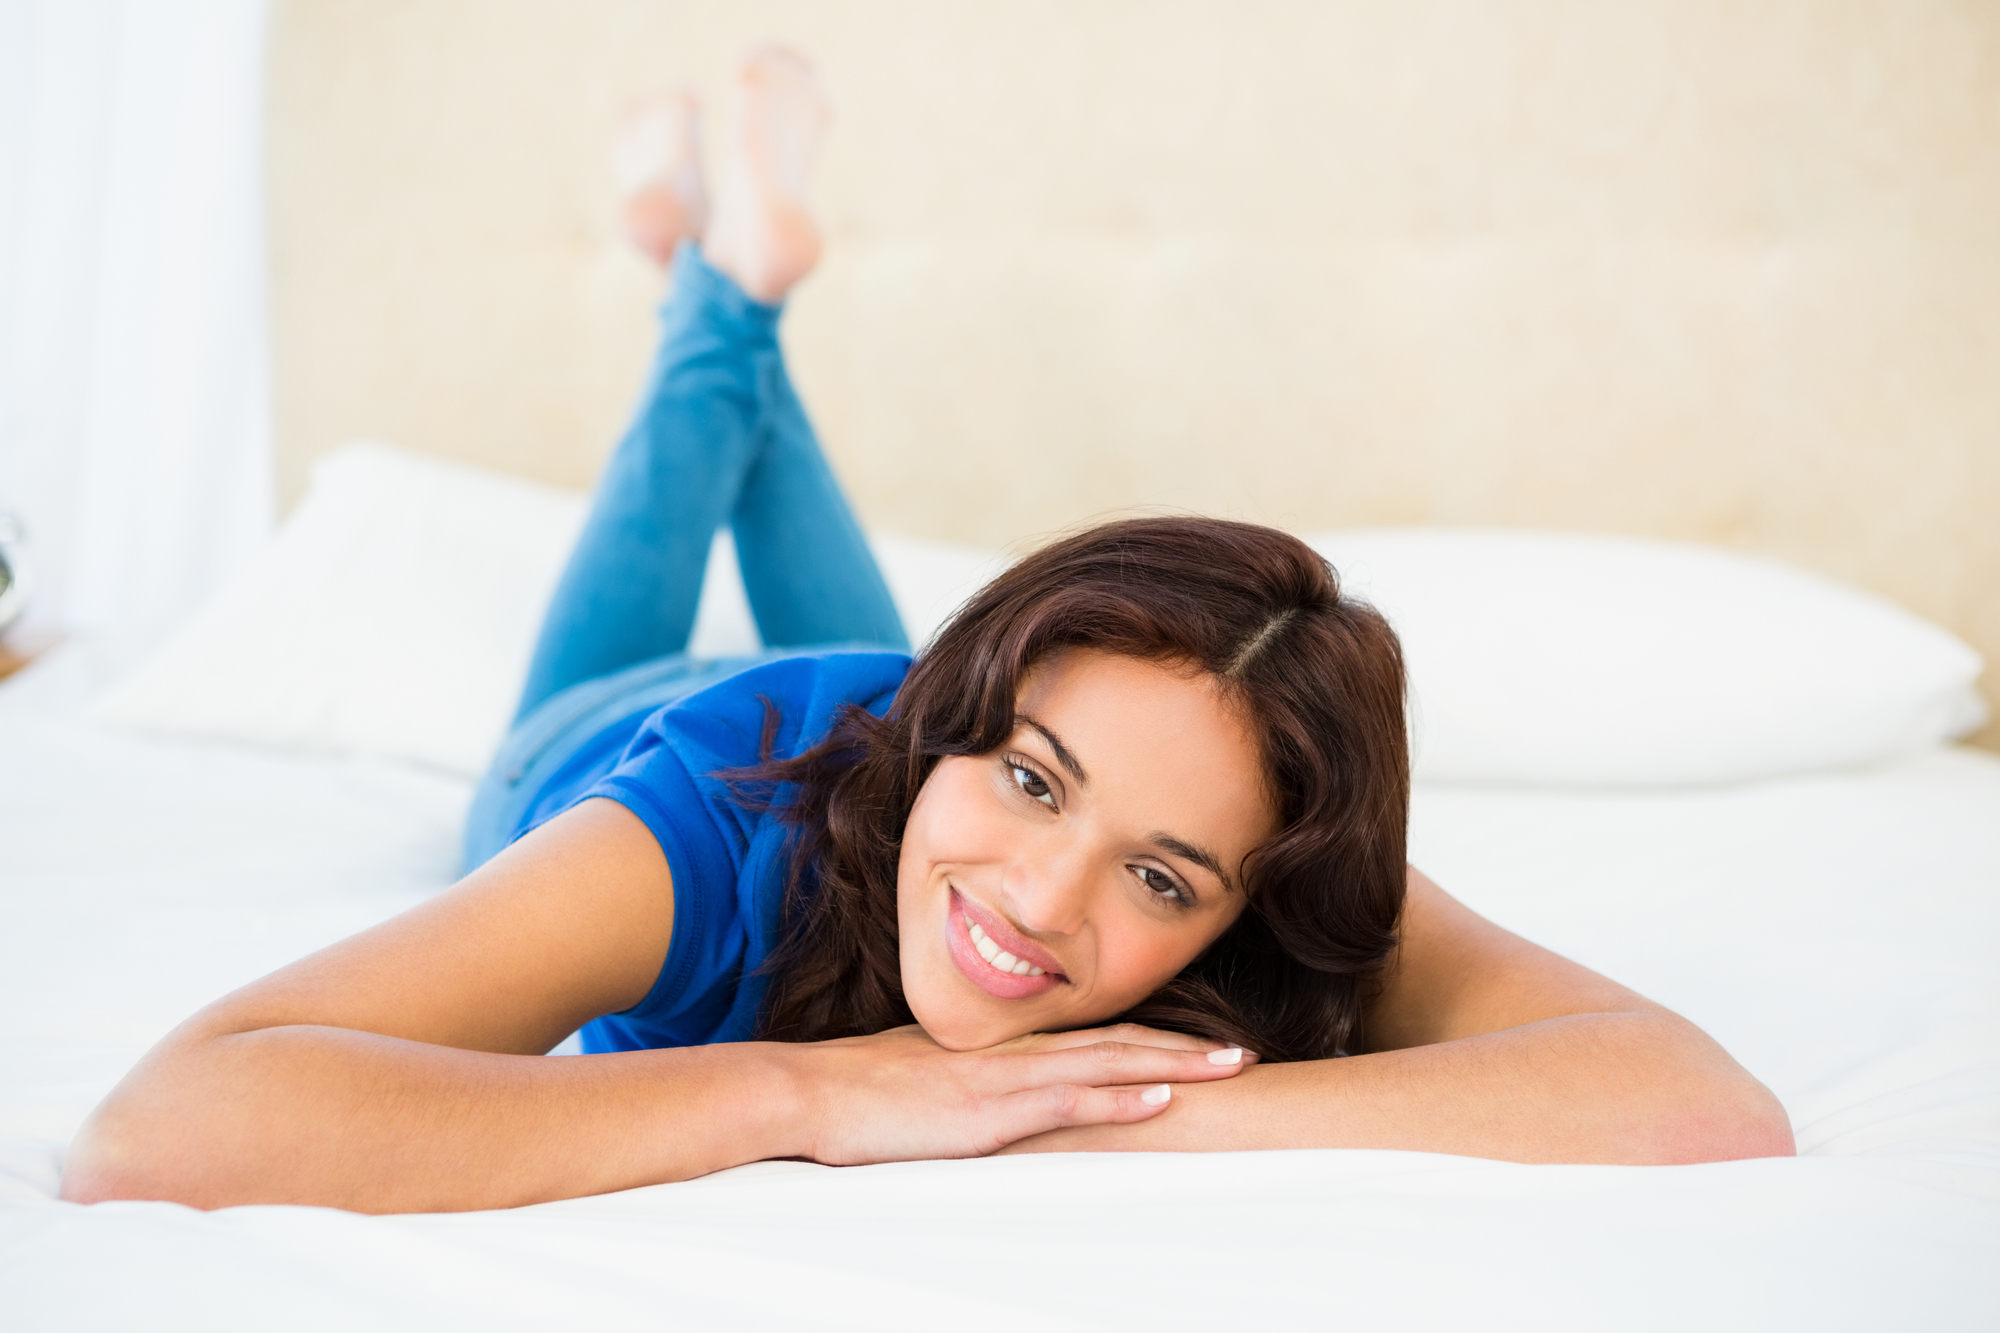 Smiling woman using smartphone while lying on bed at home